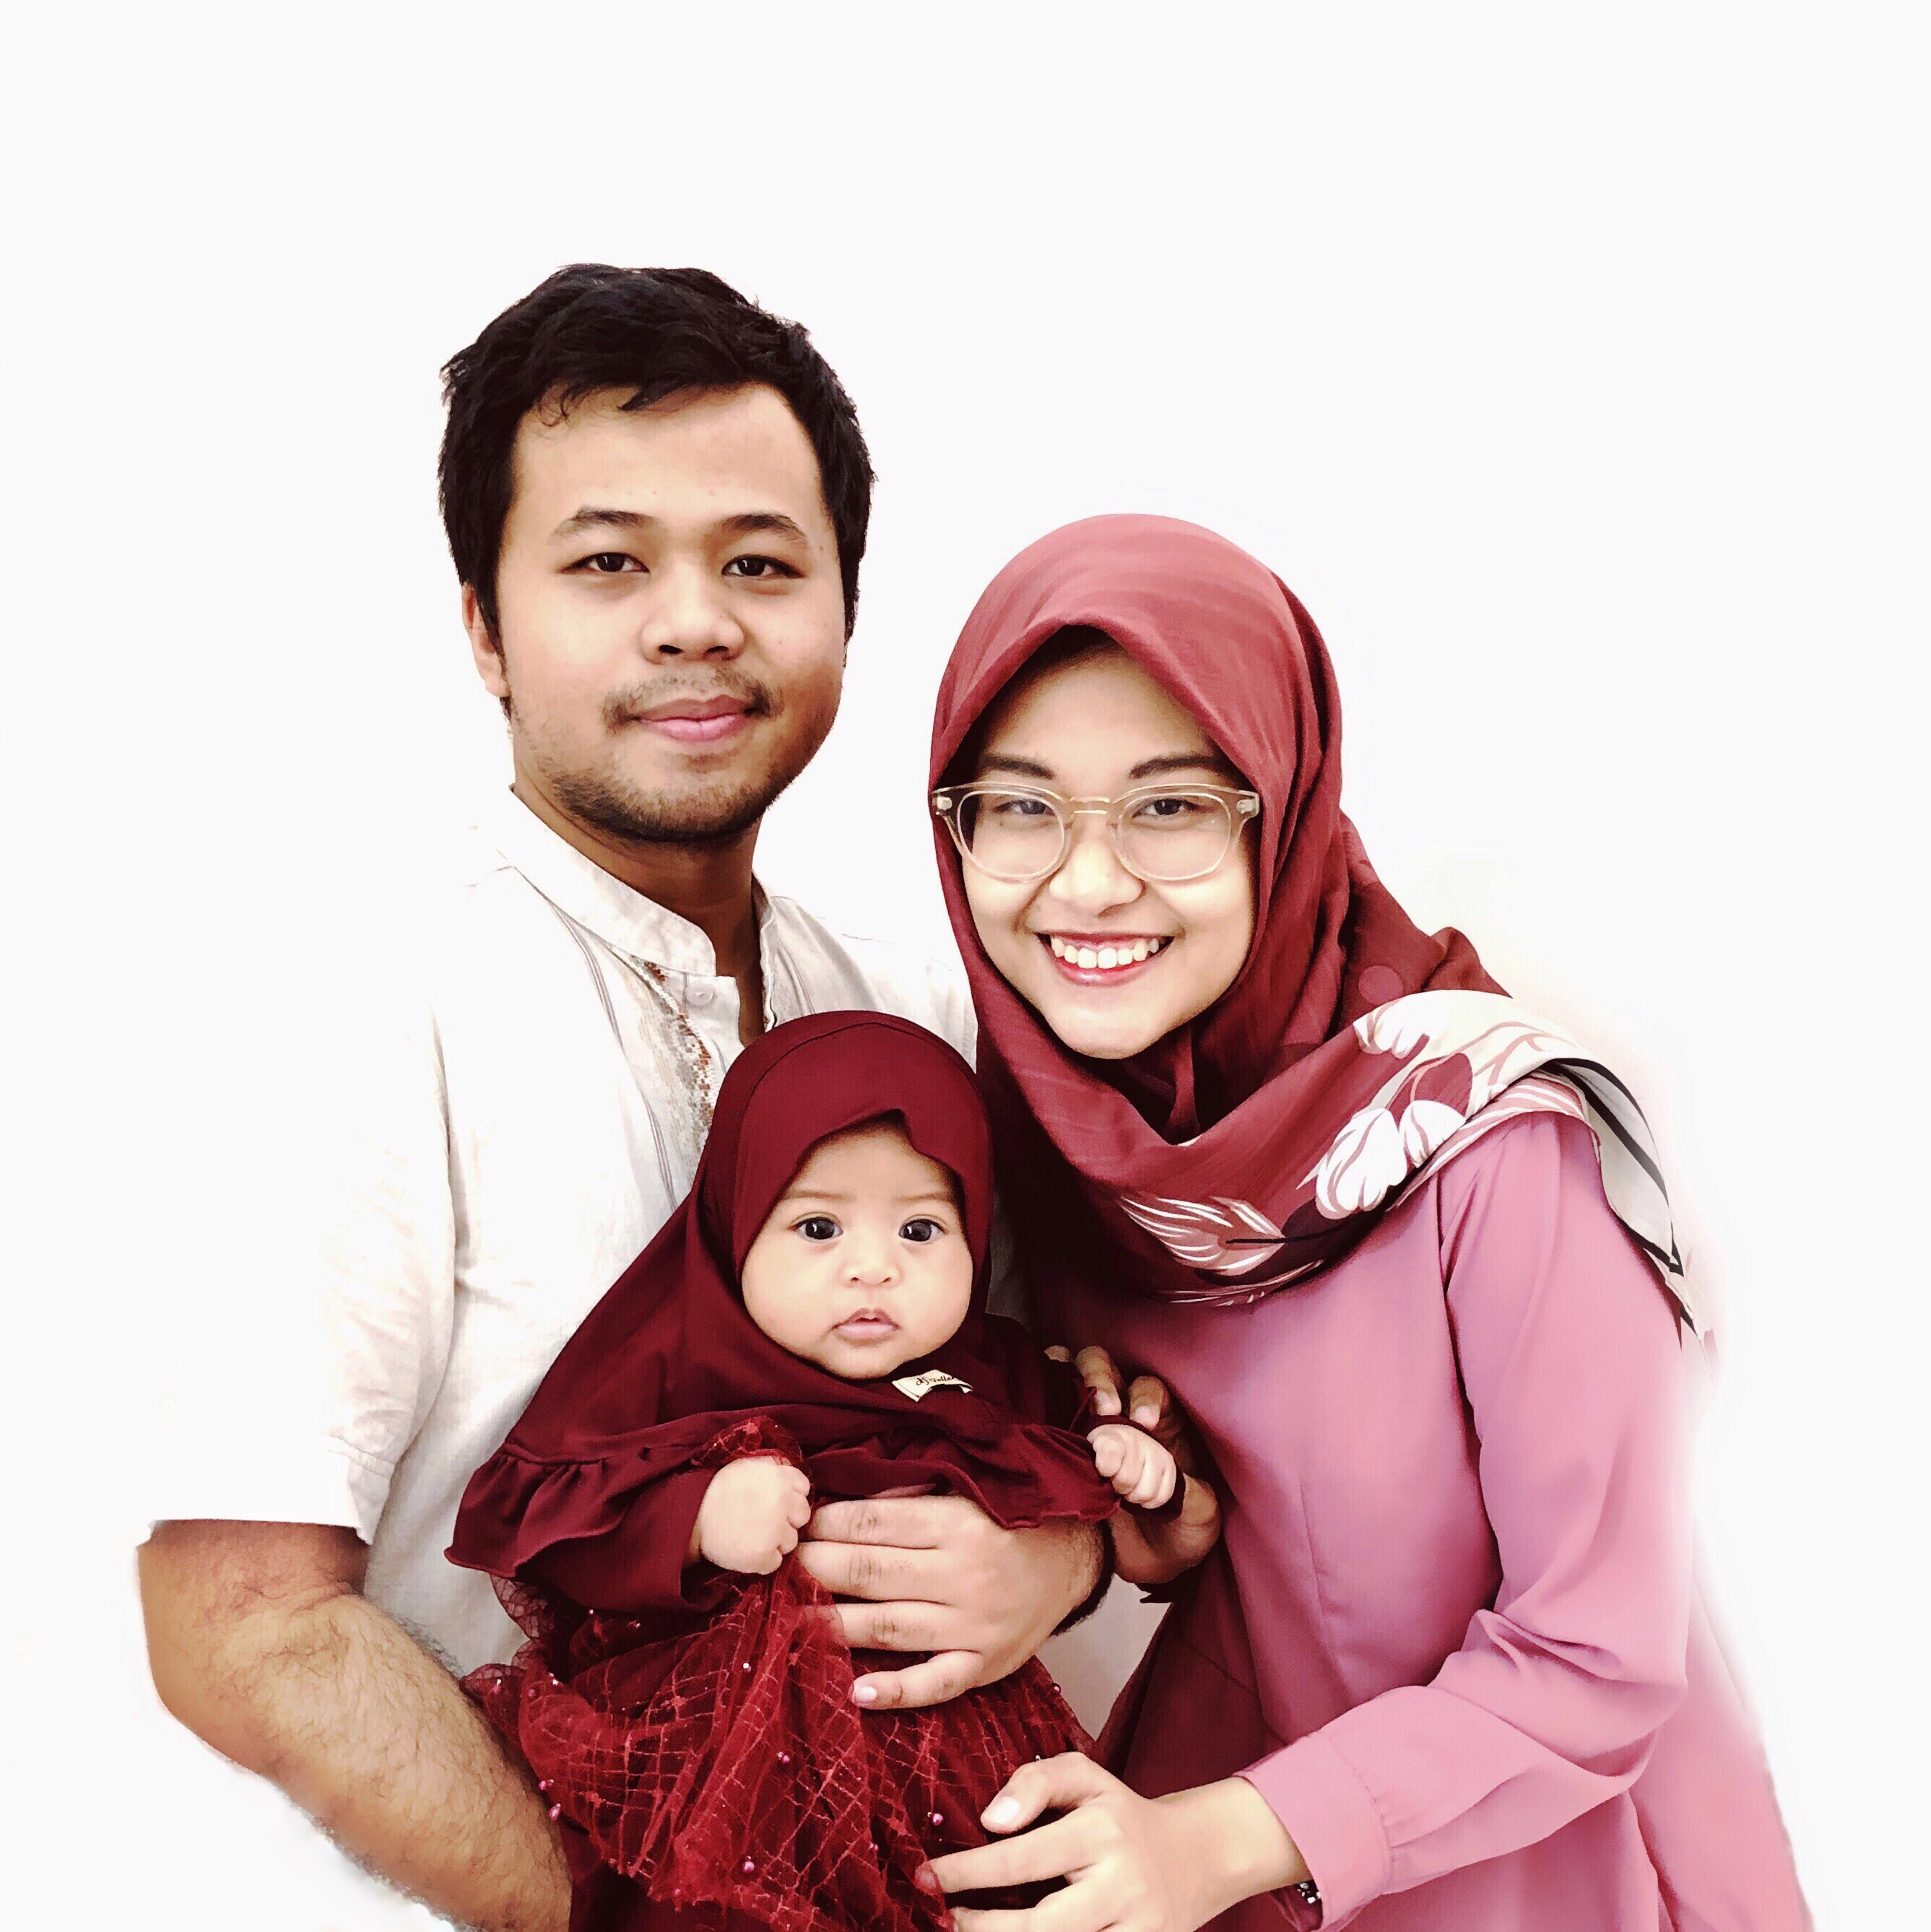 A couple pose with their baby daughter